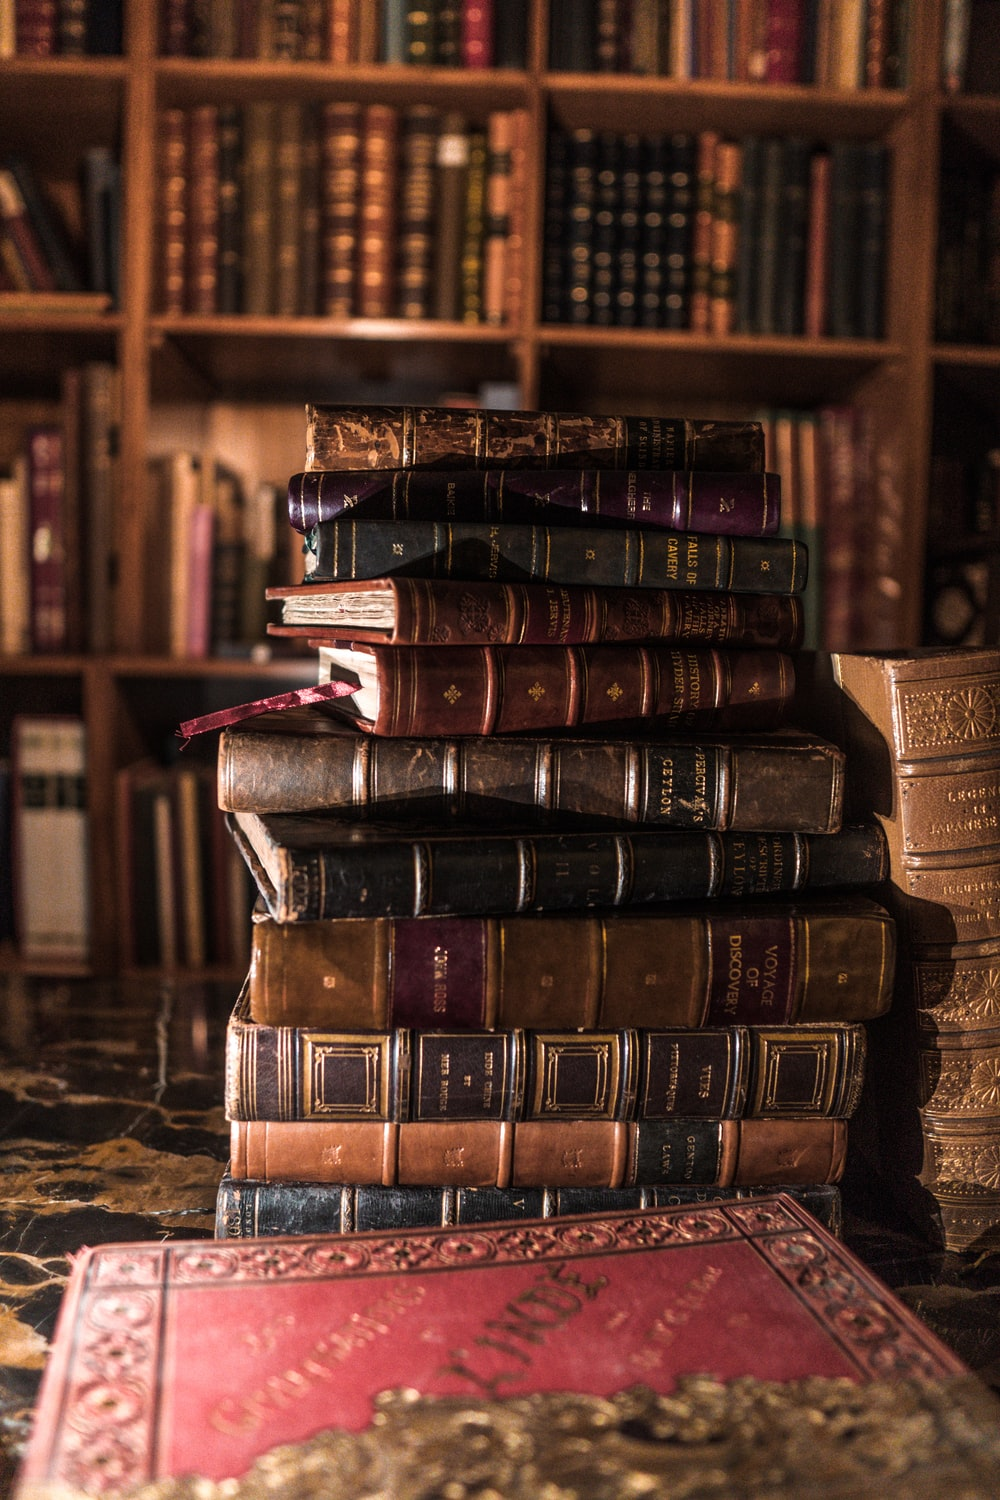 stack of books on brown wooden shelf photo – Free Bookcase Image on Unsplash